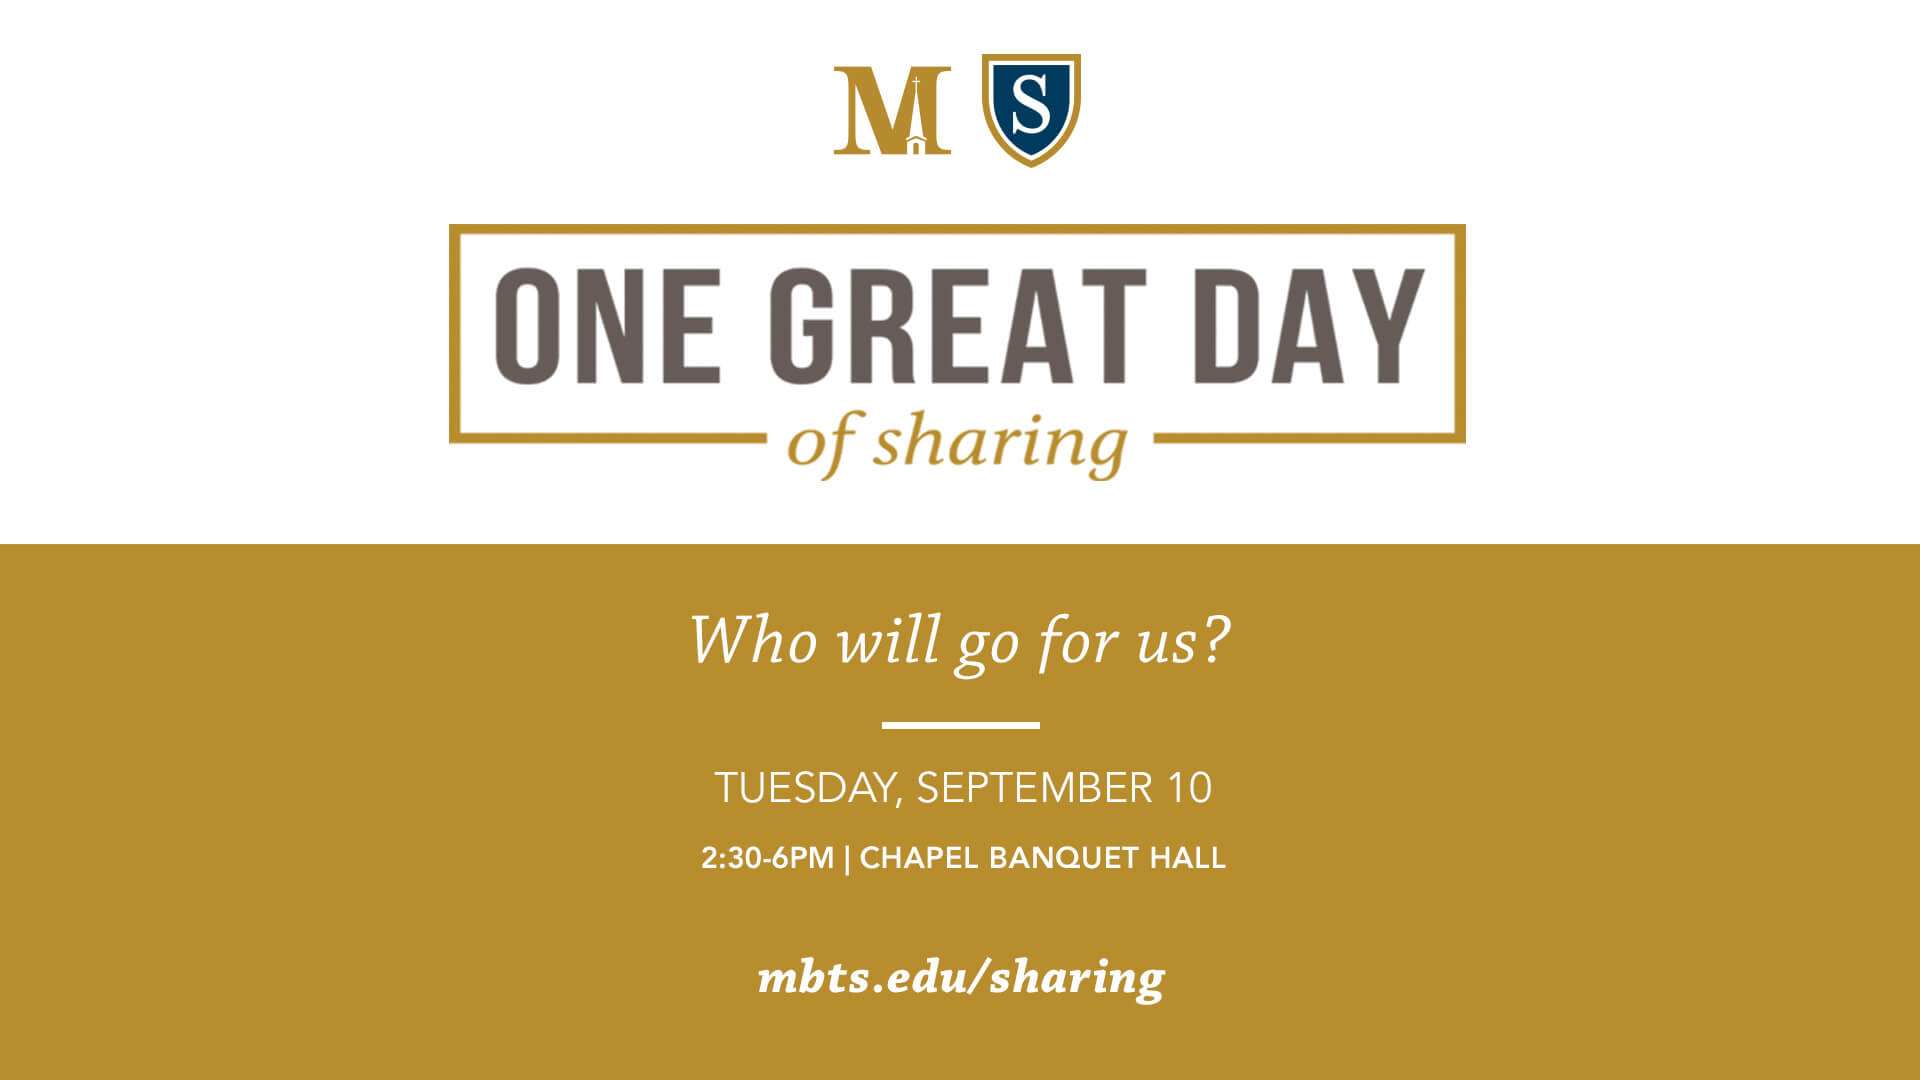 One Great Day of Sharing